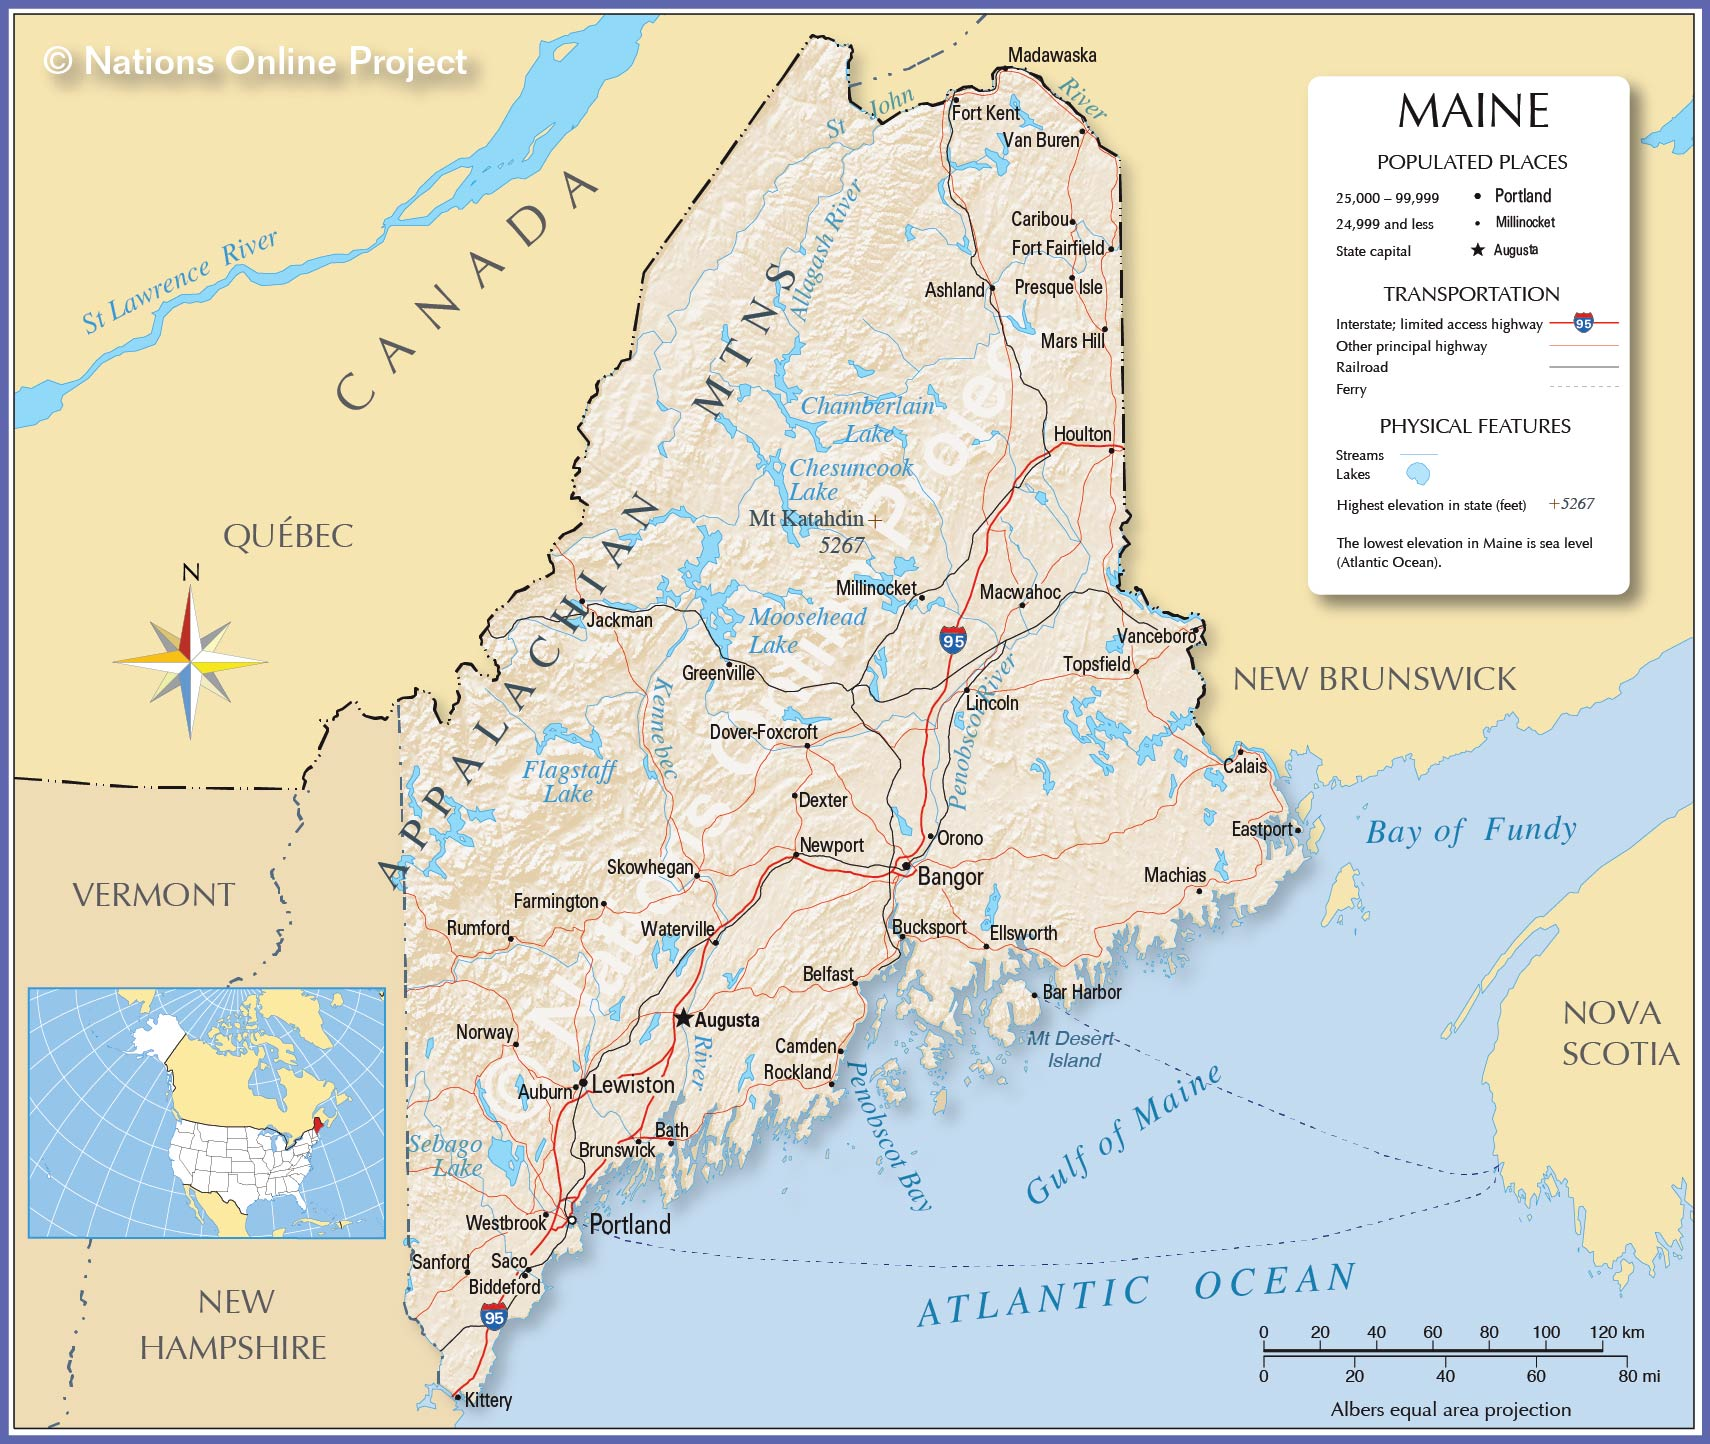 Reference Map Of Maine USA Nations Online Project - Maine state map